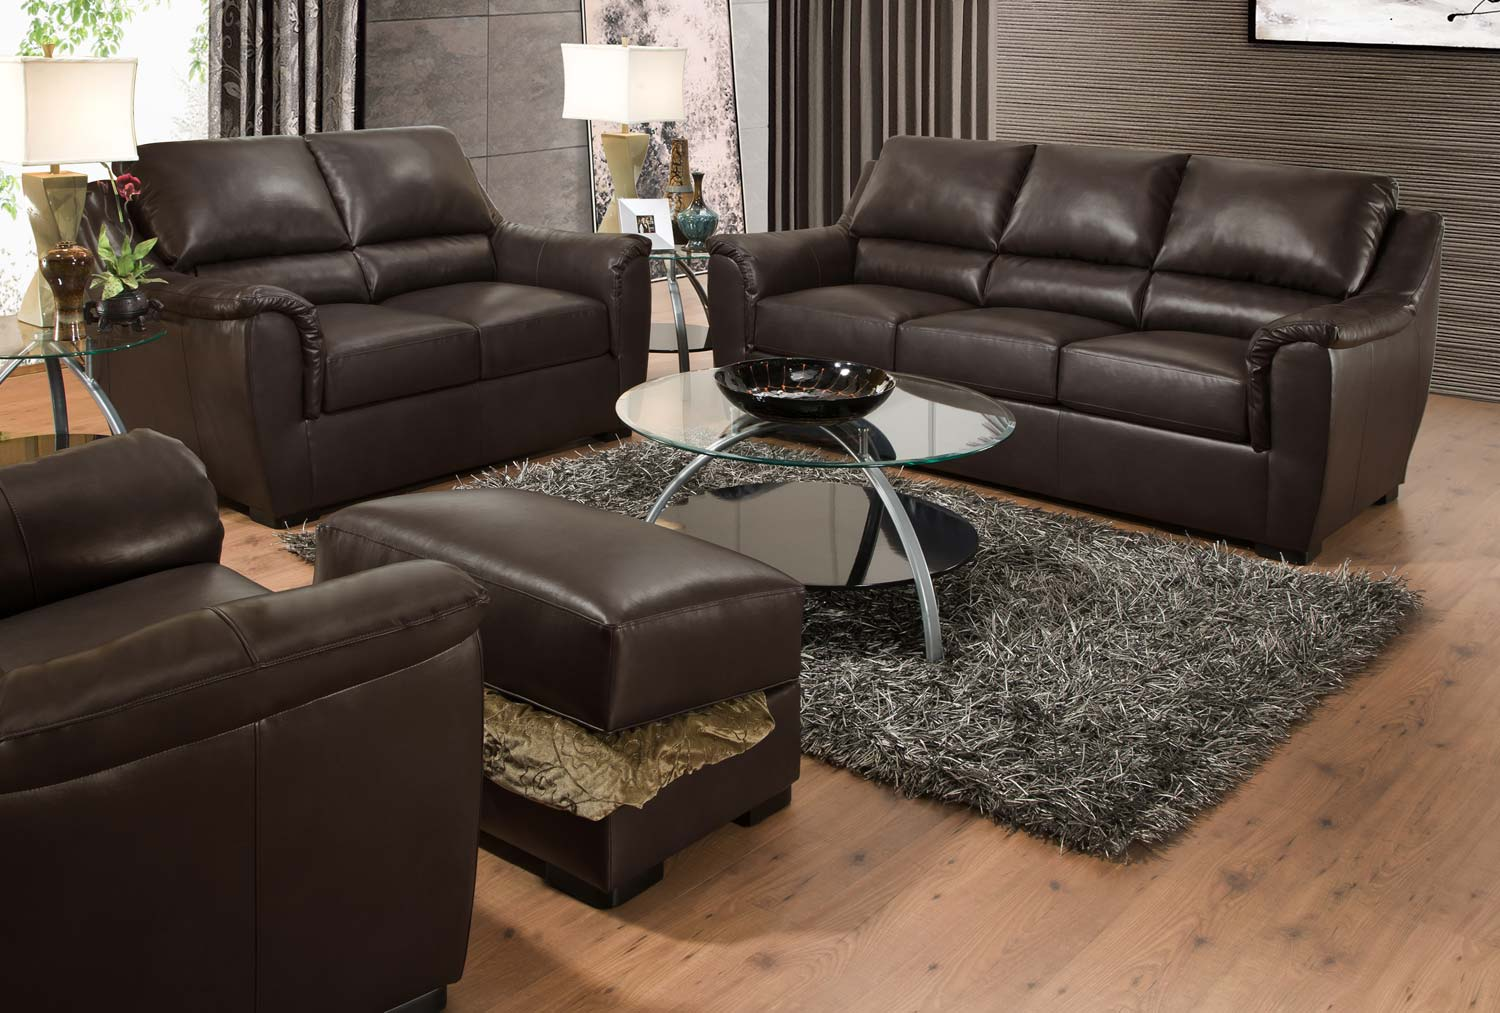 Global Furniture USA 6540 Sofa Set - Bonded Leather - Espresso